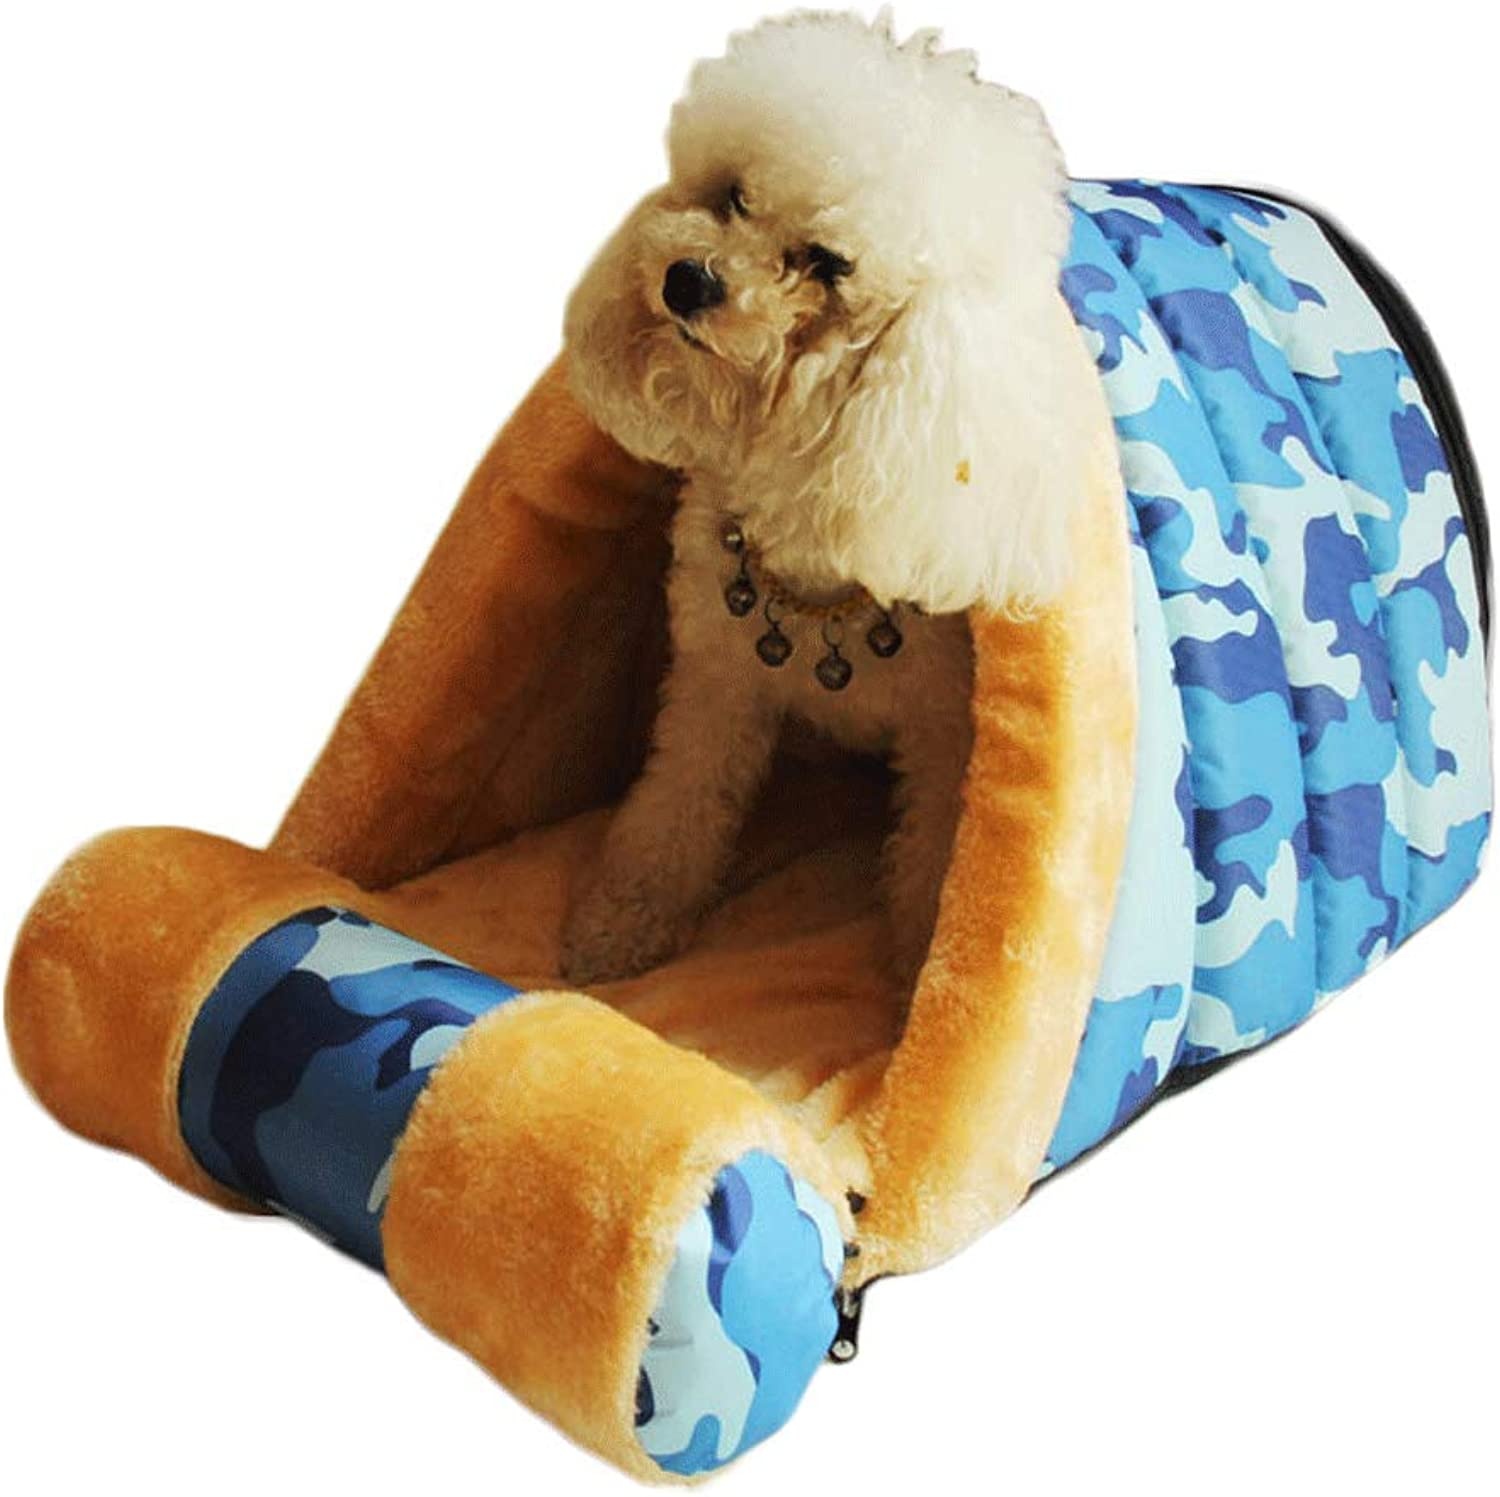 Pet Bed Small Pet Nest Detachable Cleaning Pillow Bomei Teddy Bear Indoor Dog House Cat Nest A+ (color   bluee, Size   58x35x33cm)